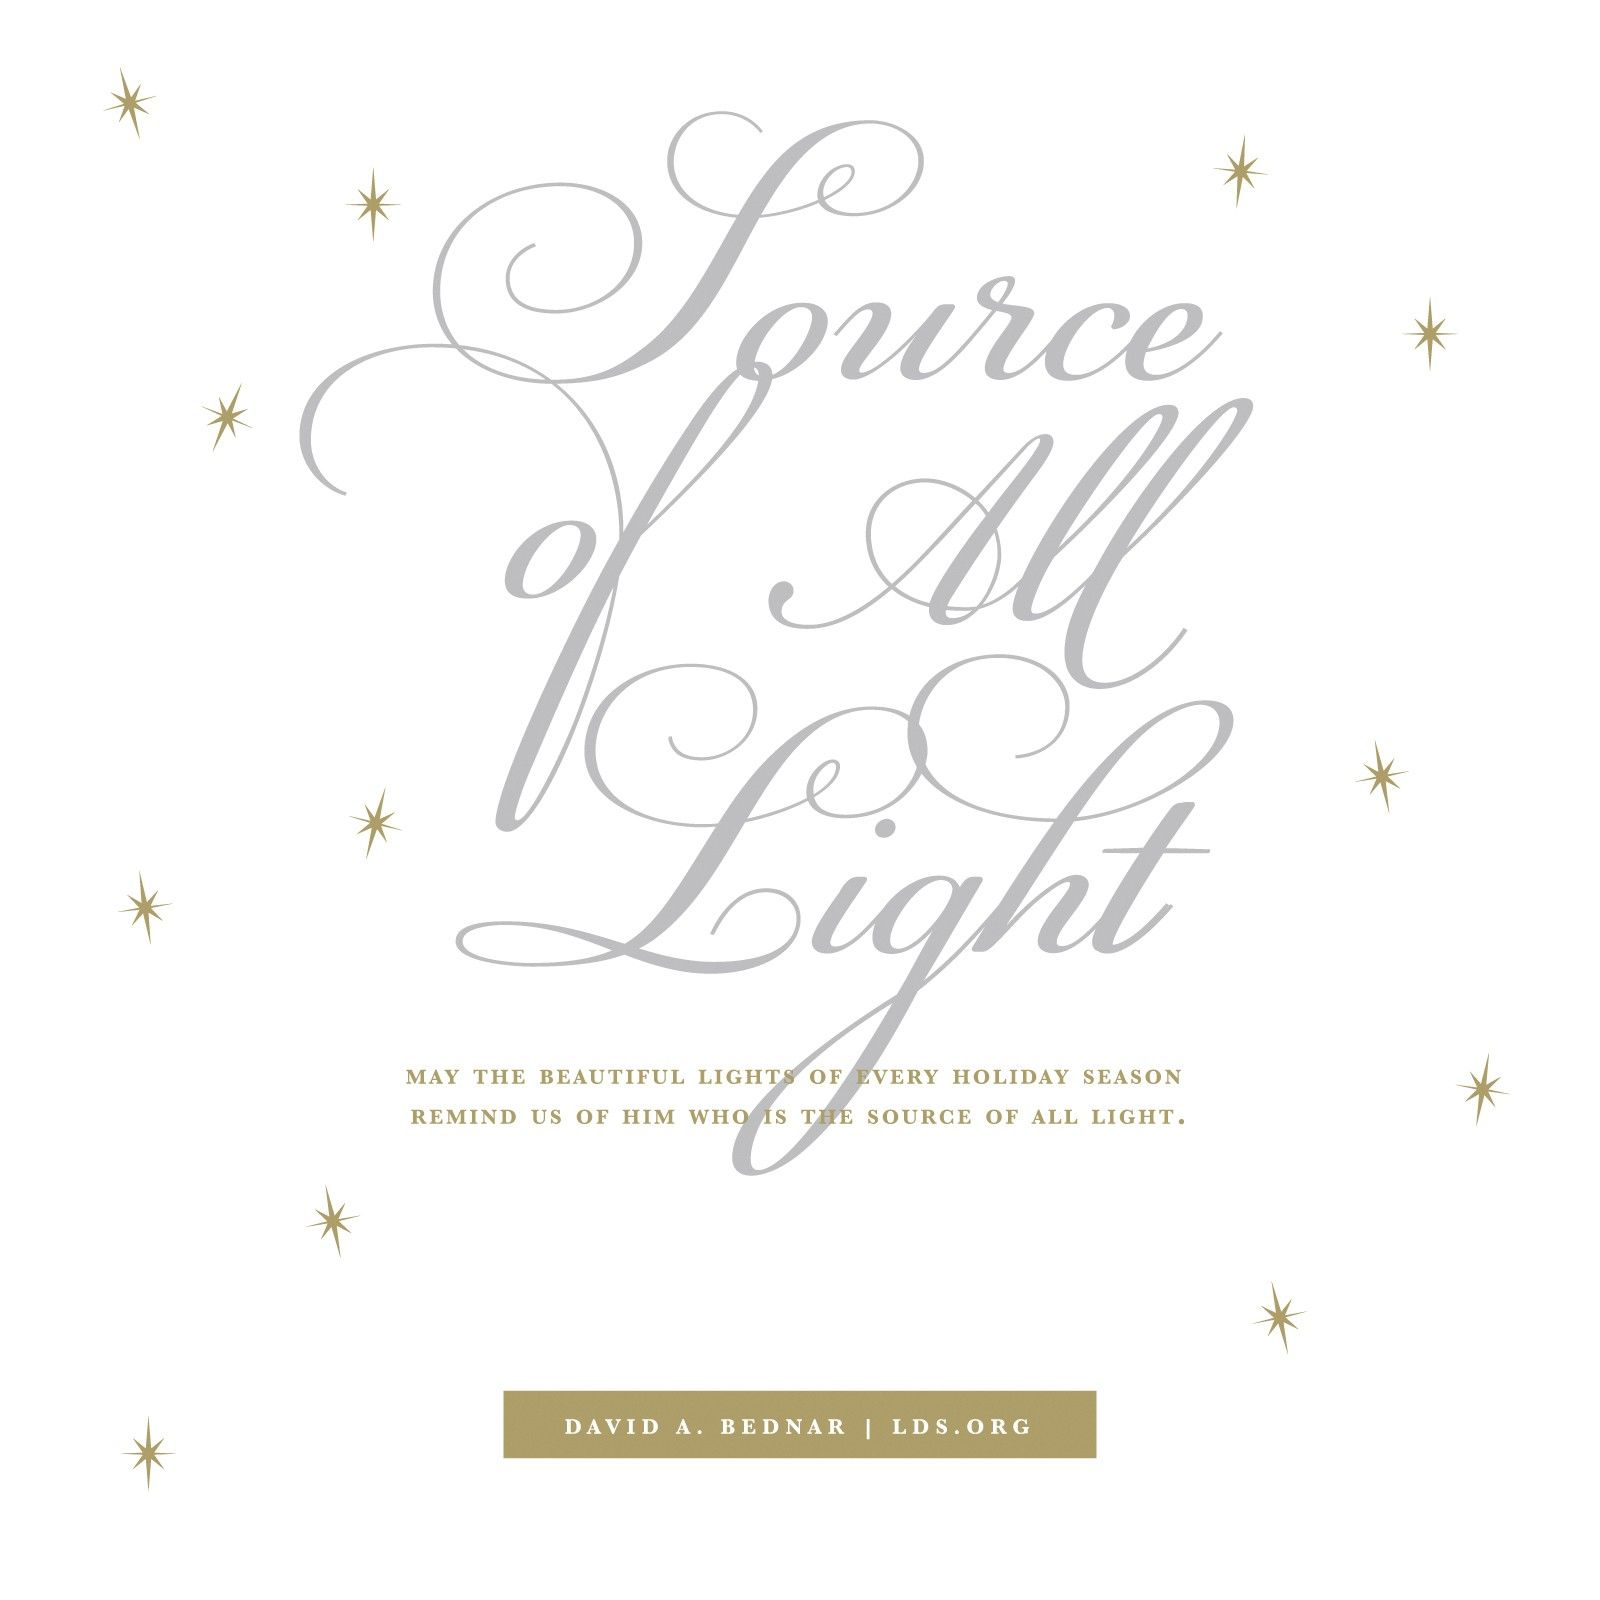 """""""May the beautiful lights of every holiday season remind us of Him who is the source of all light.""""—Elder David A. Bednar, """"The Light and the Life of the World"""""""